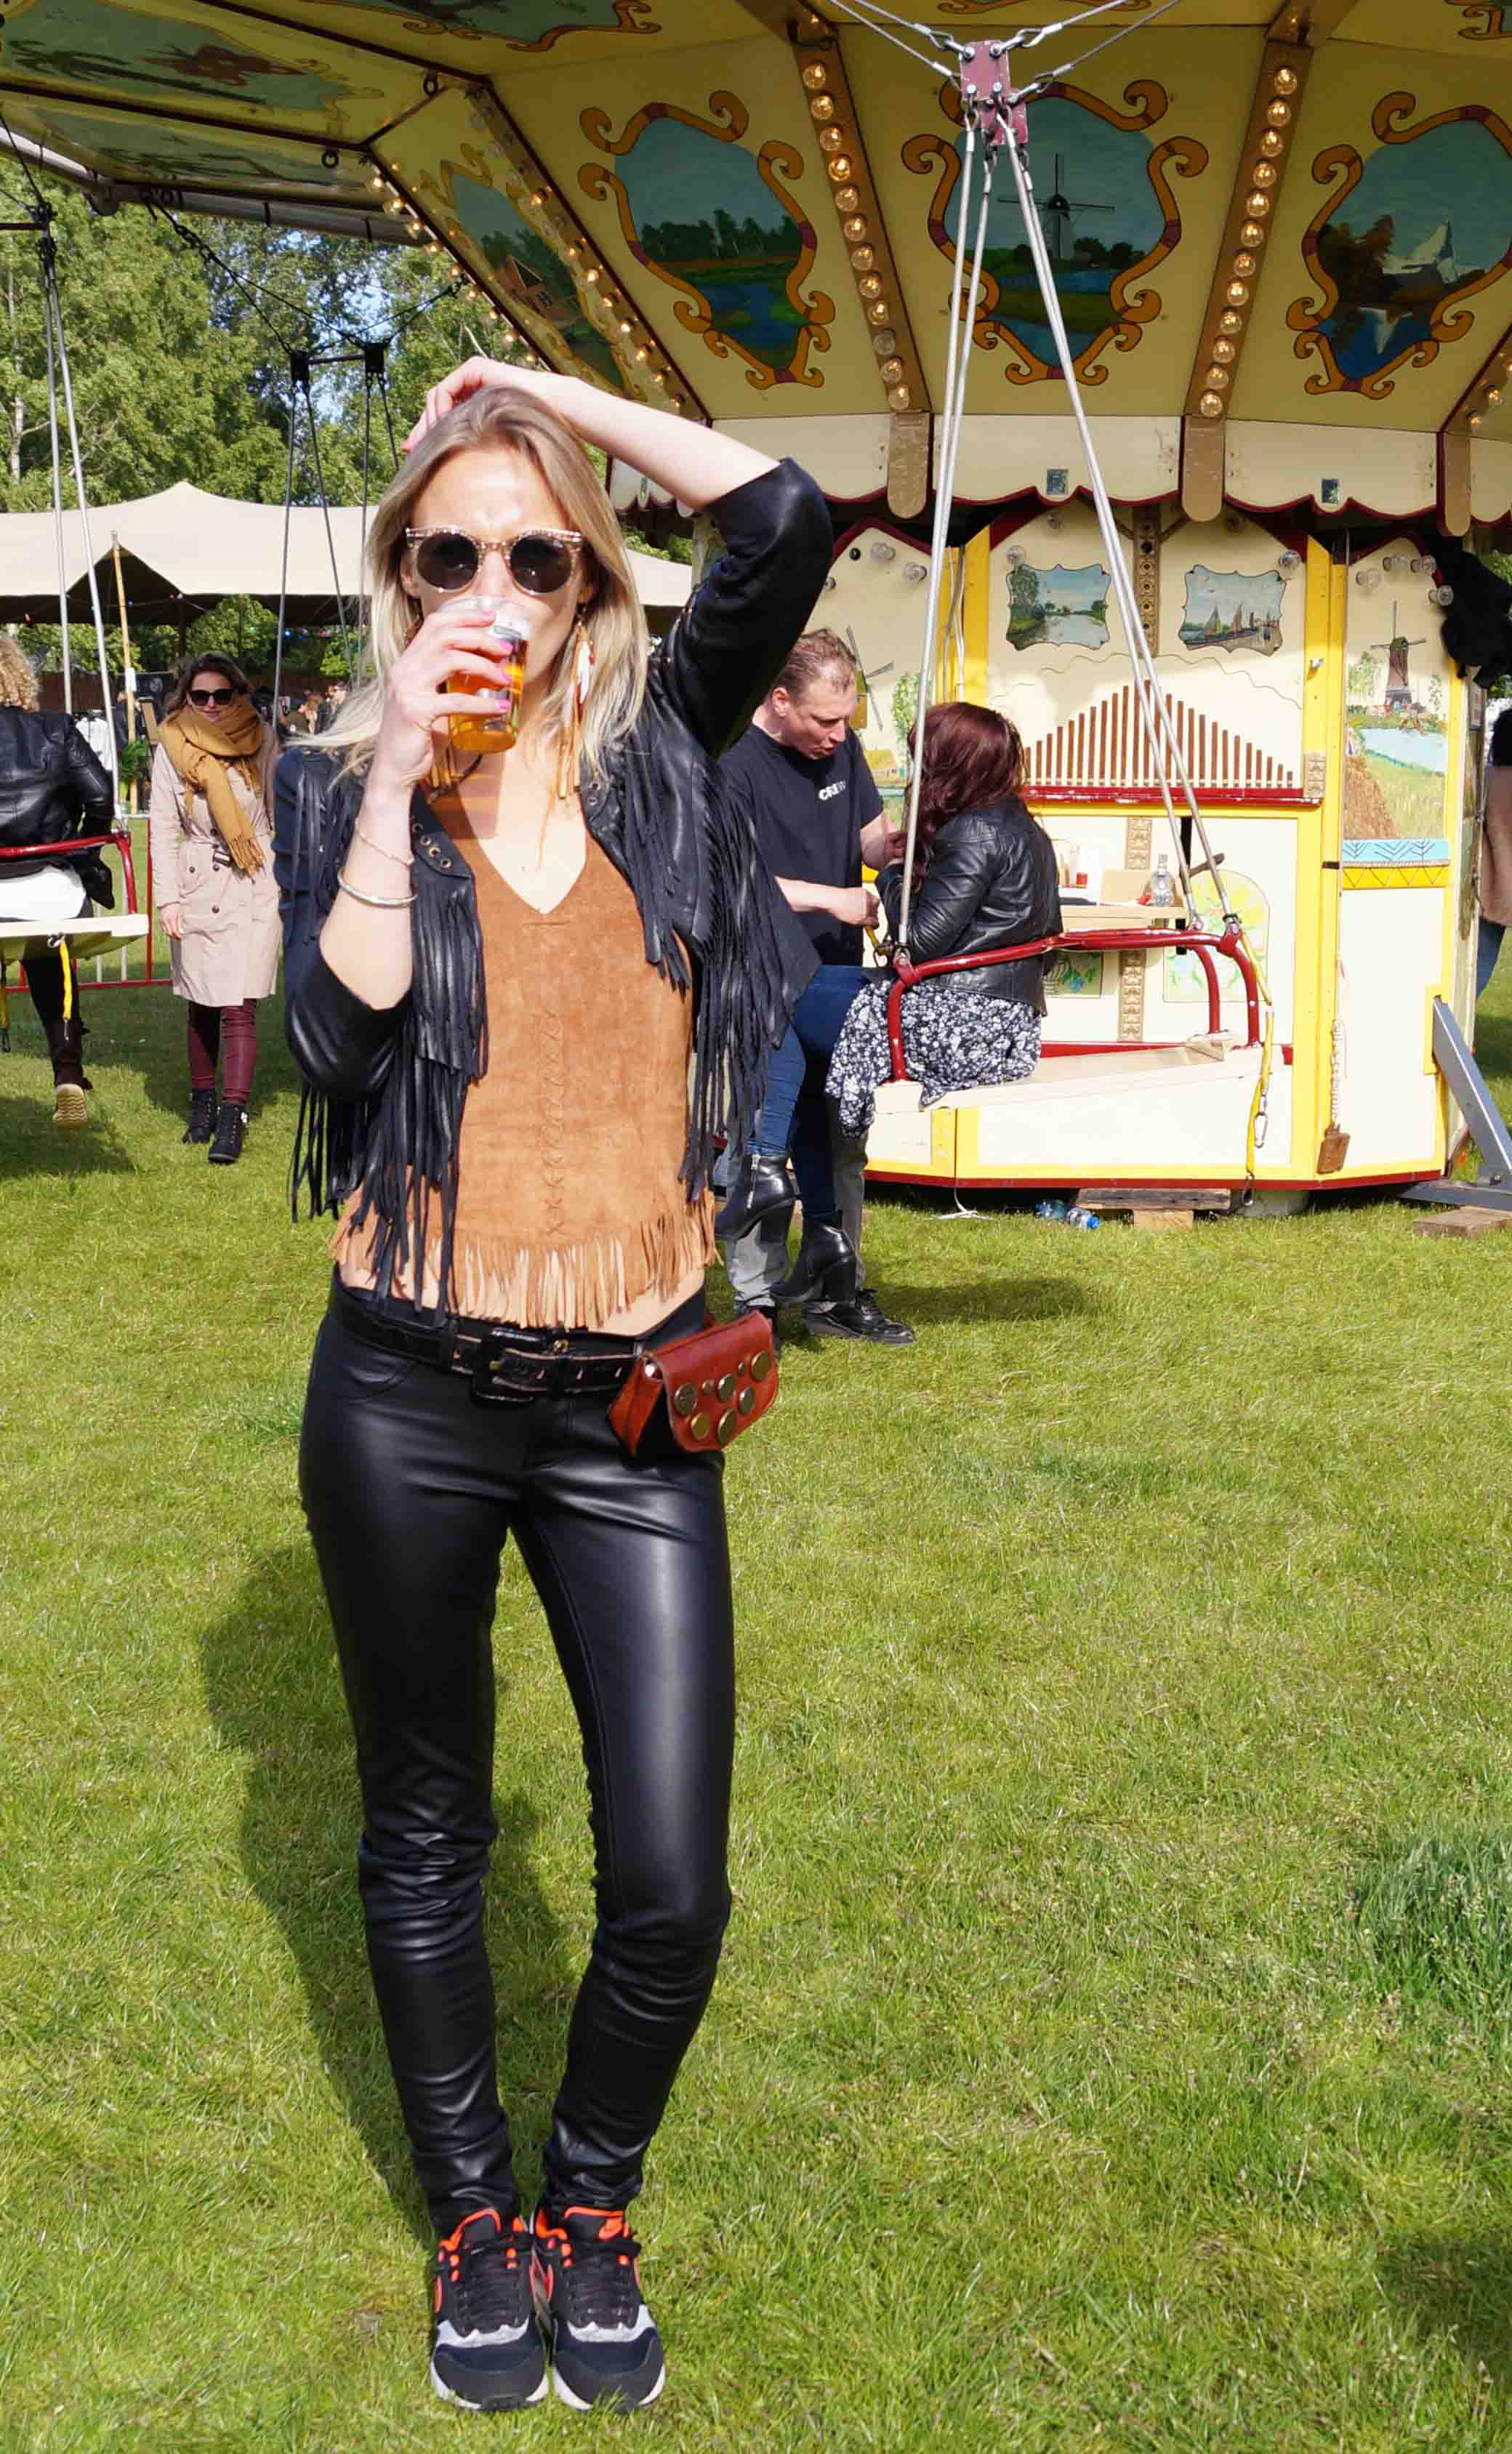 Bag at You - Fashion Blog - Festival Look - Bum Bag and beer